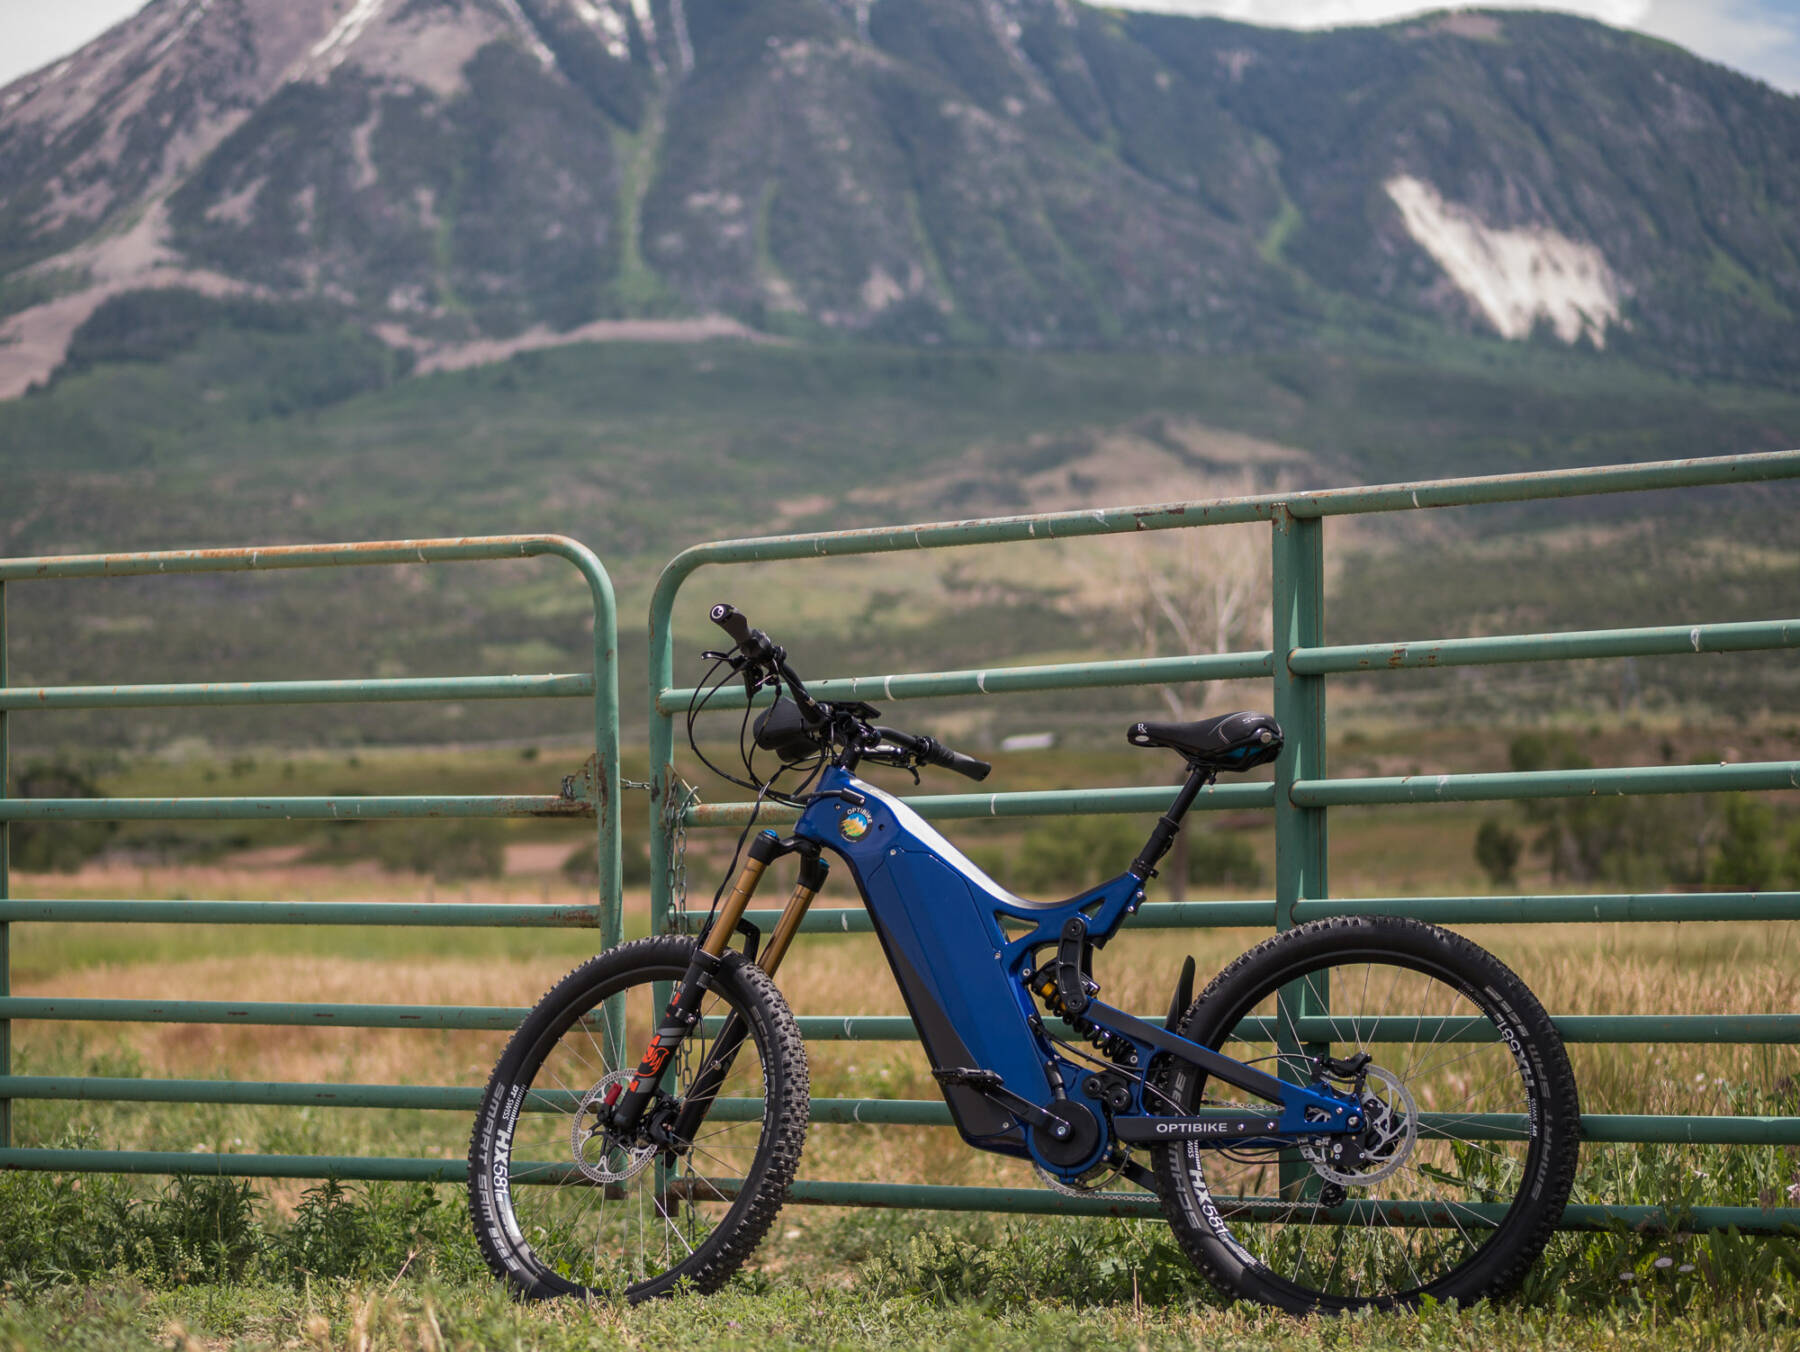 R15C leaning against a fence with mountains in the background